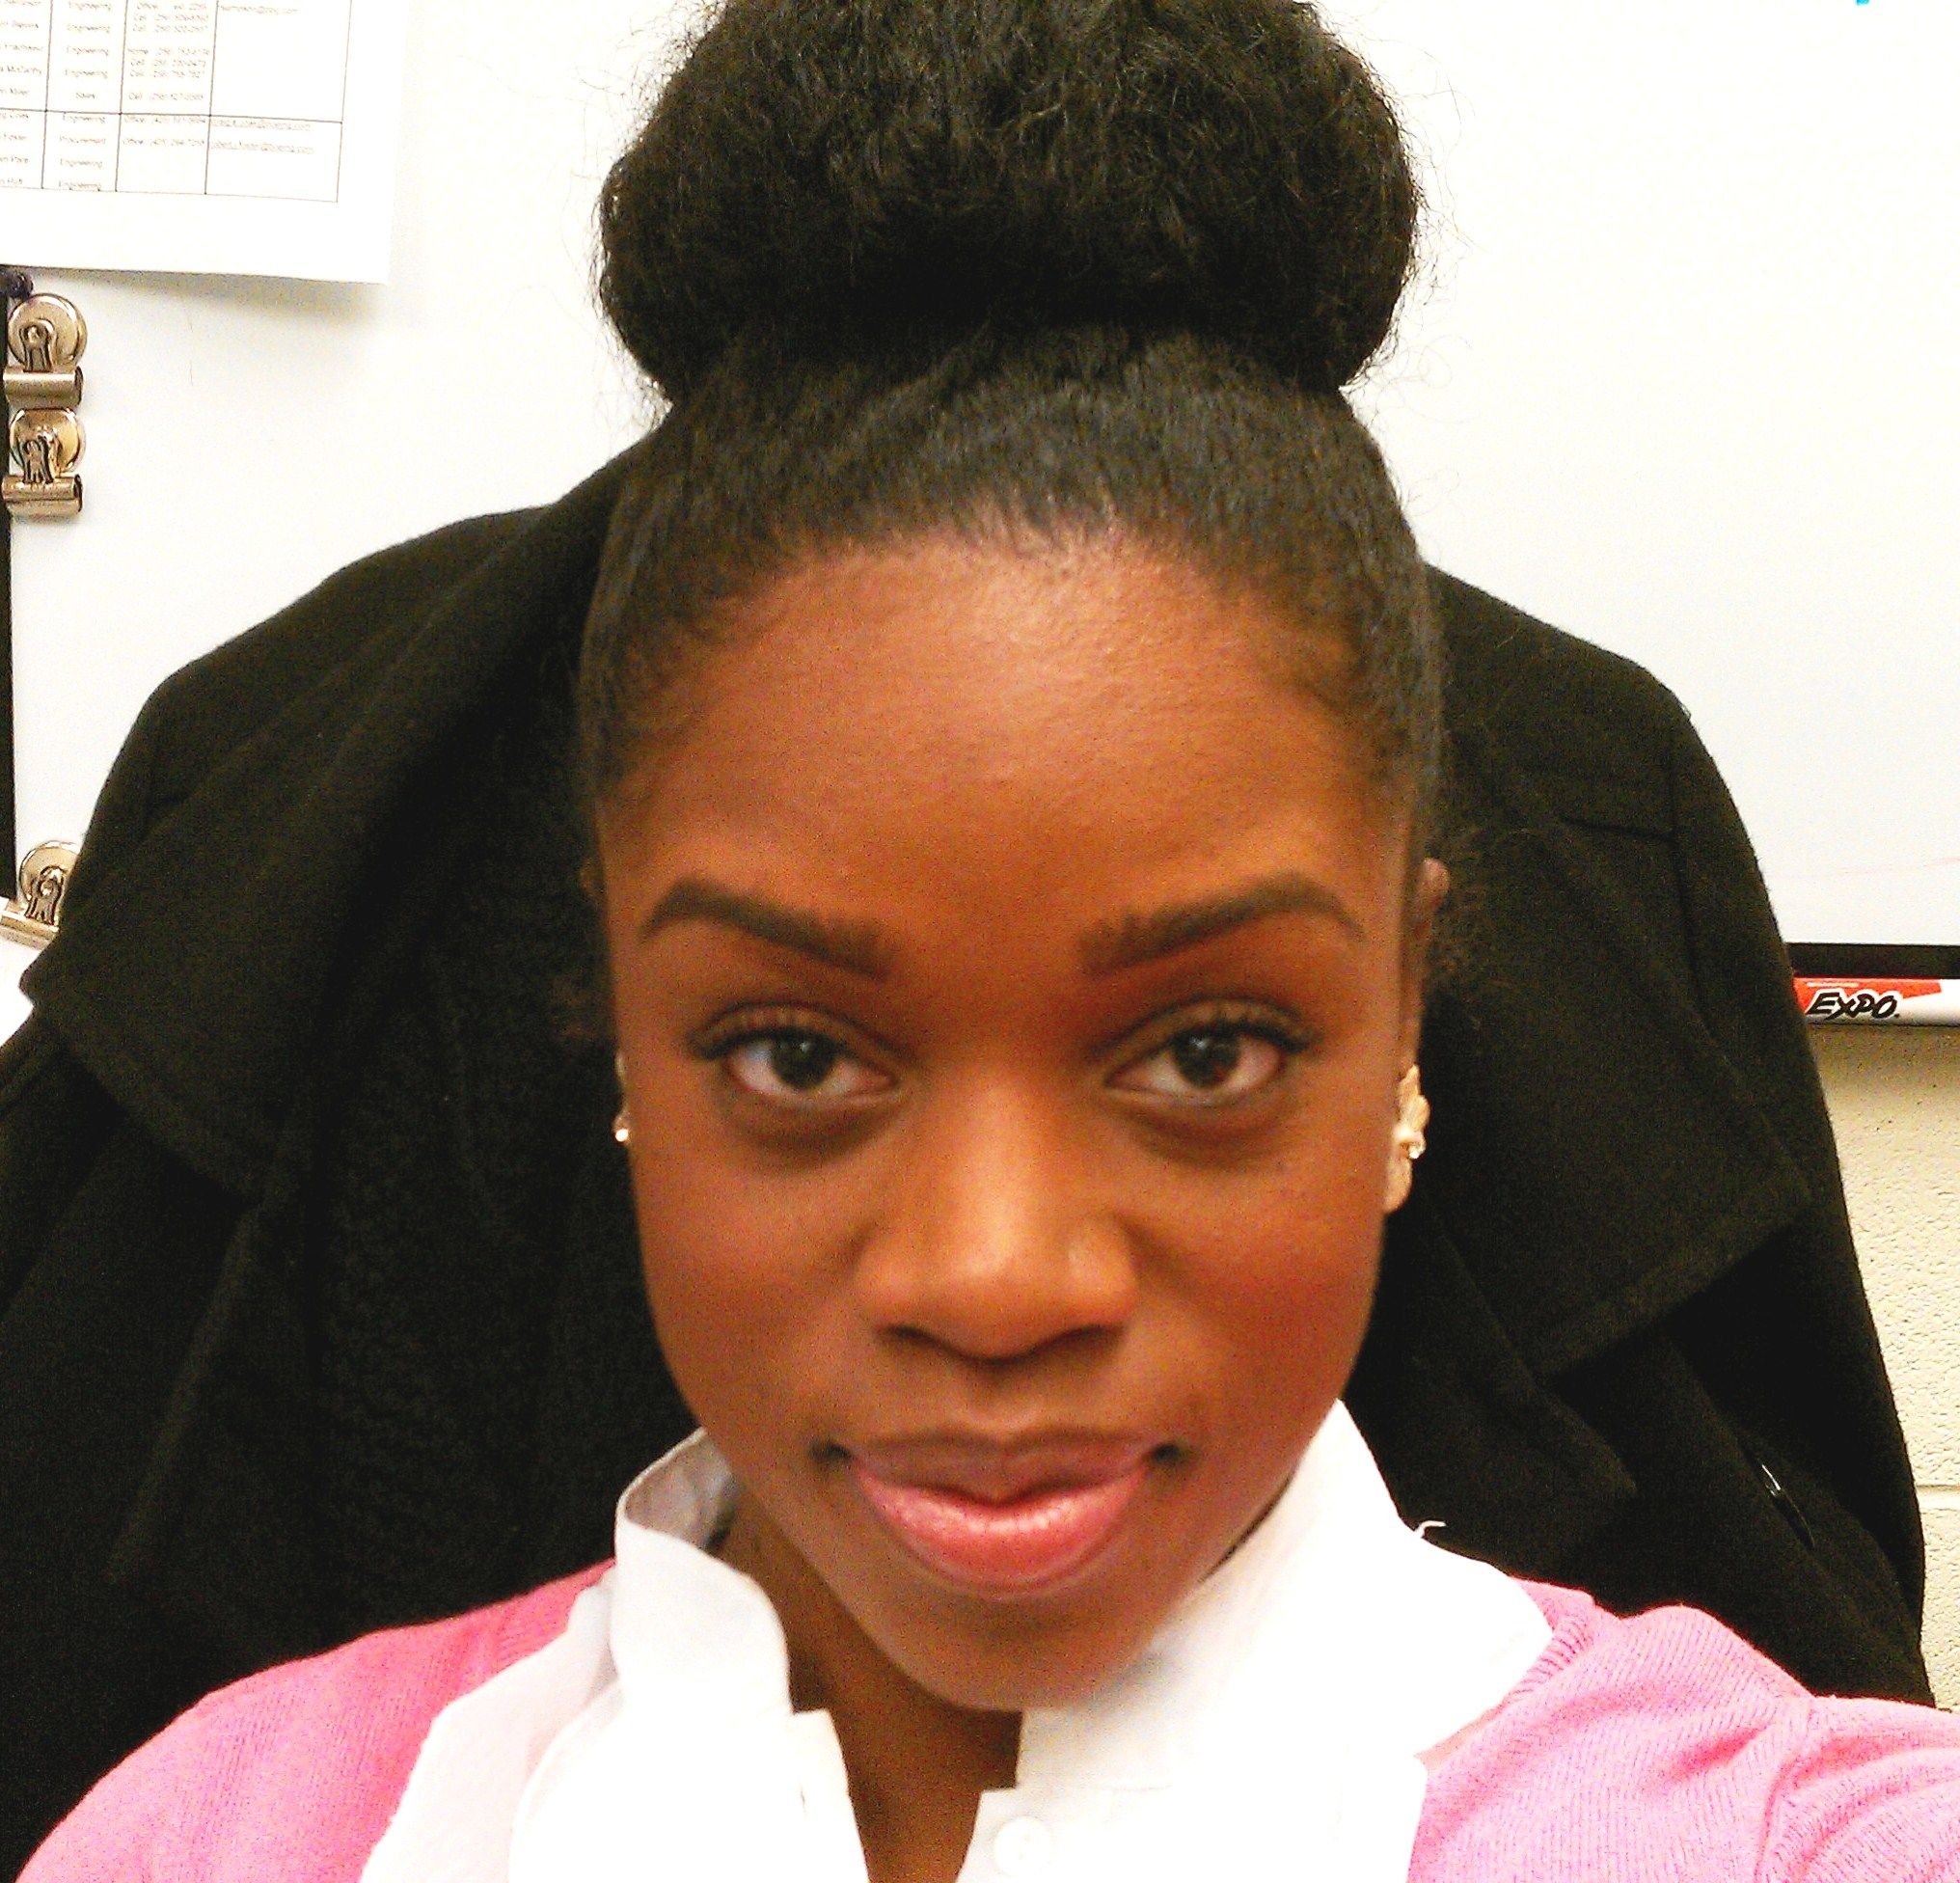 Natural Hairstyles For Job Interviews Endearing Job Interview Hairstyles For Natural Hair  Google Search